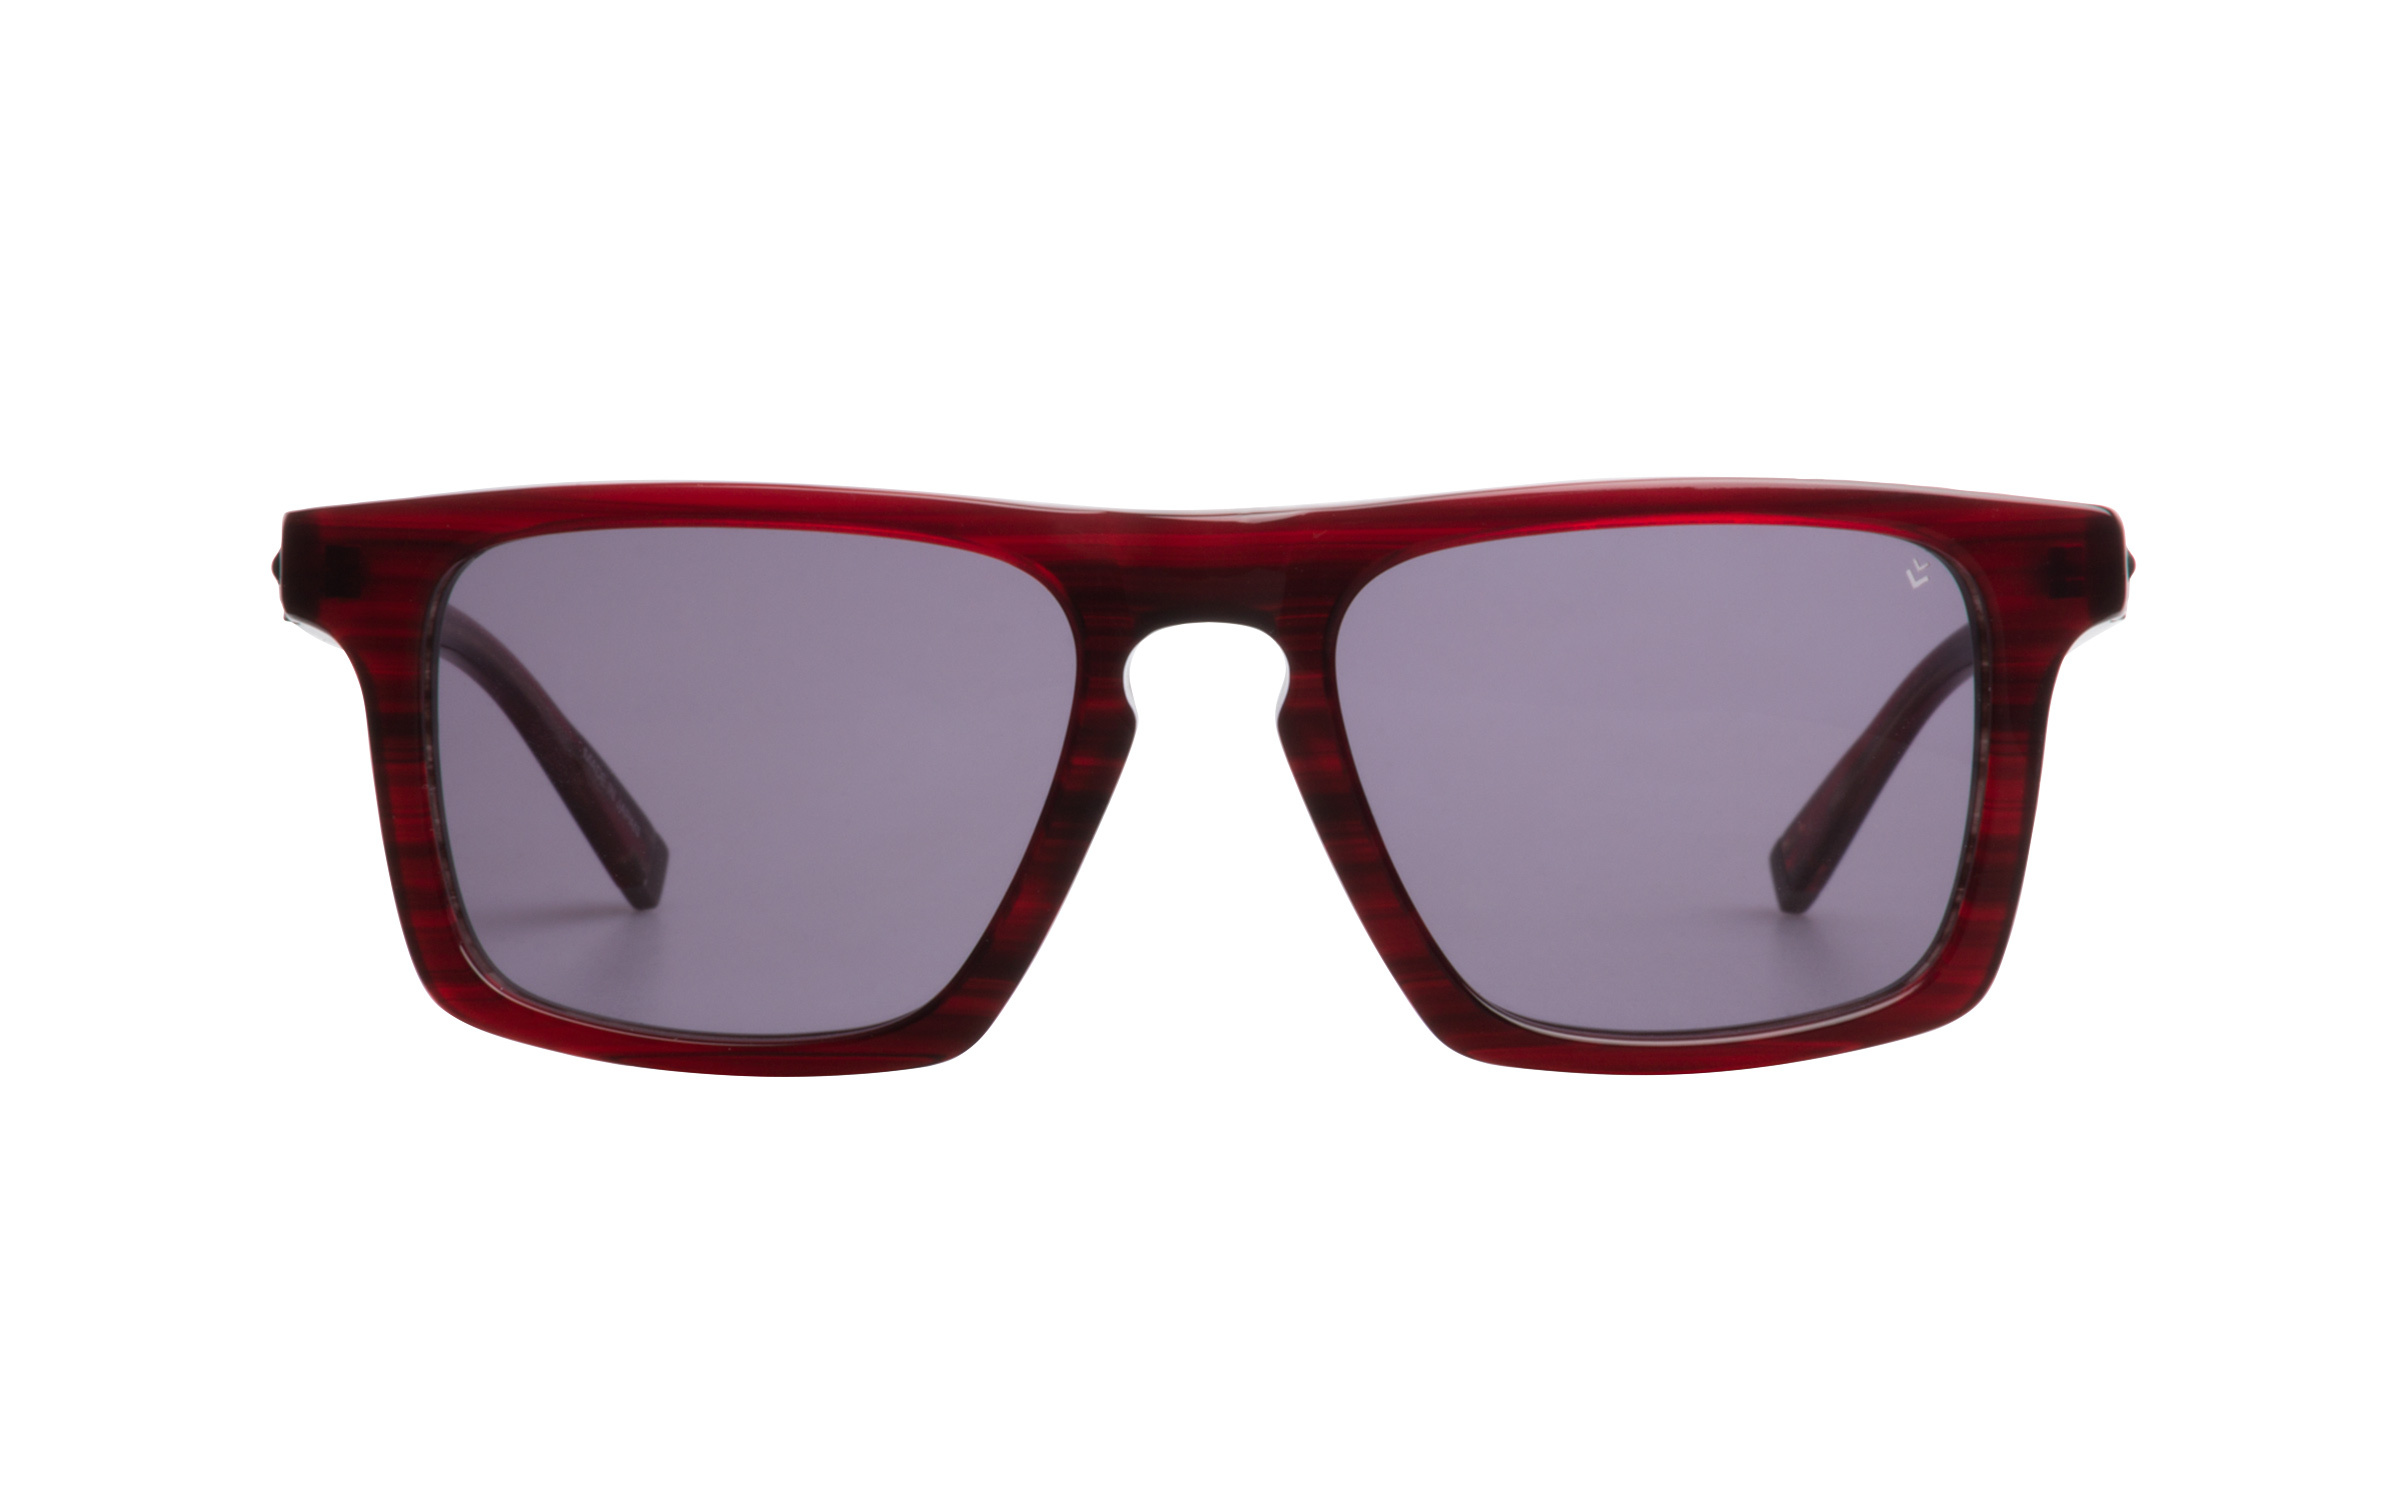 John_Varvatos_Sunglasses_Vintage_Red_Acetate_Online_Coastal